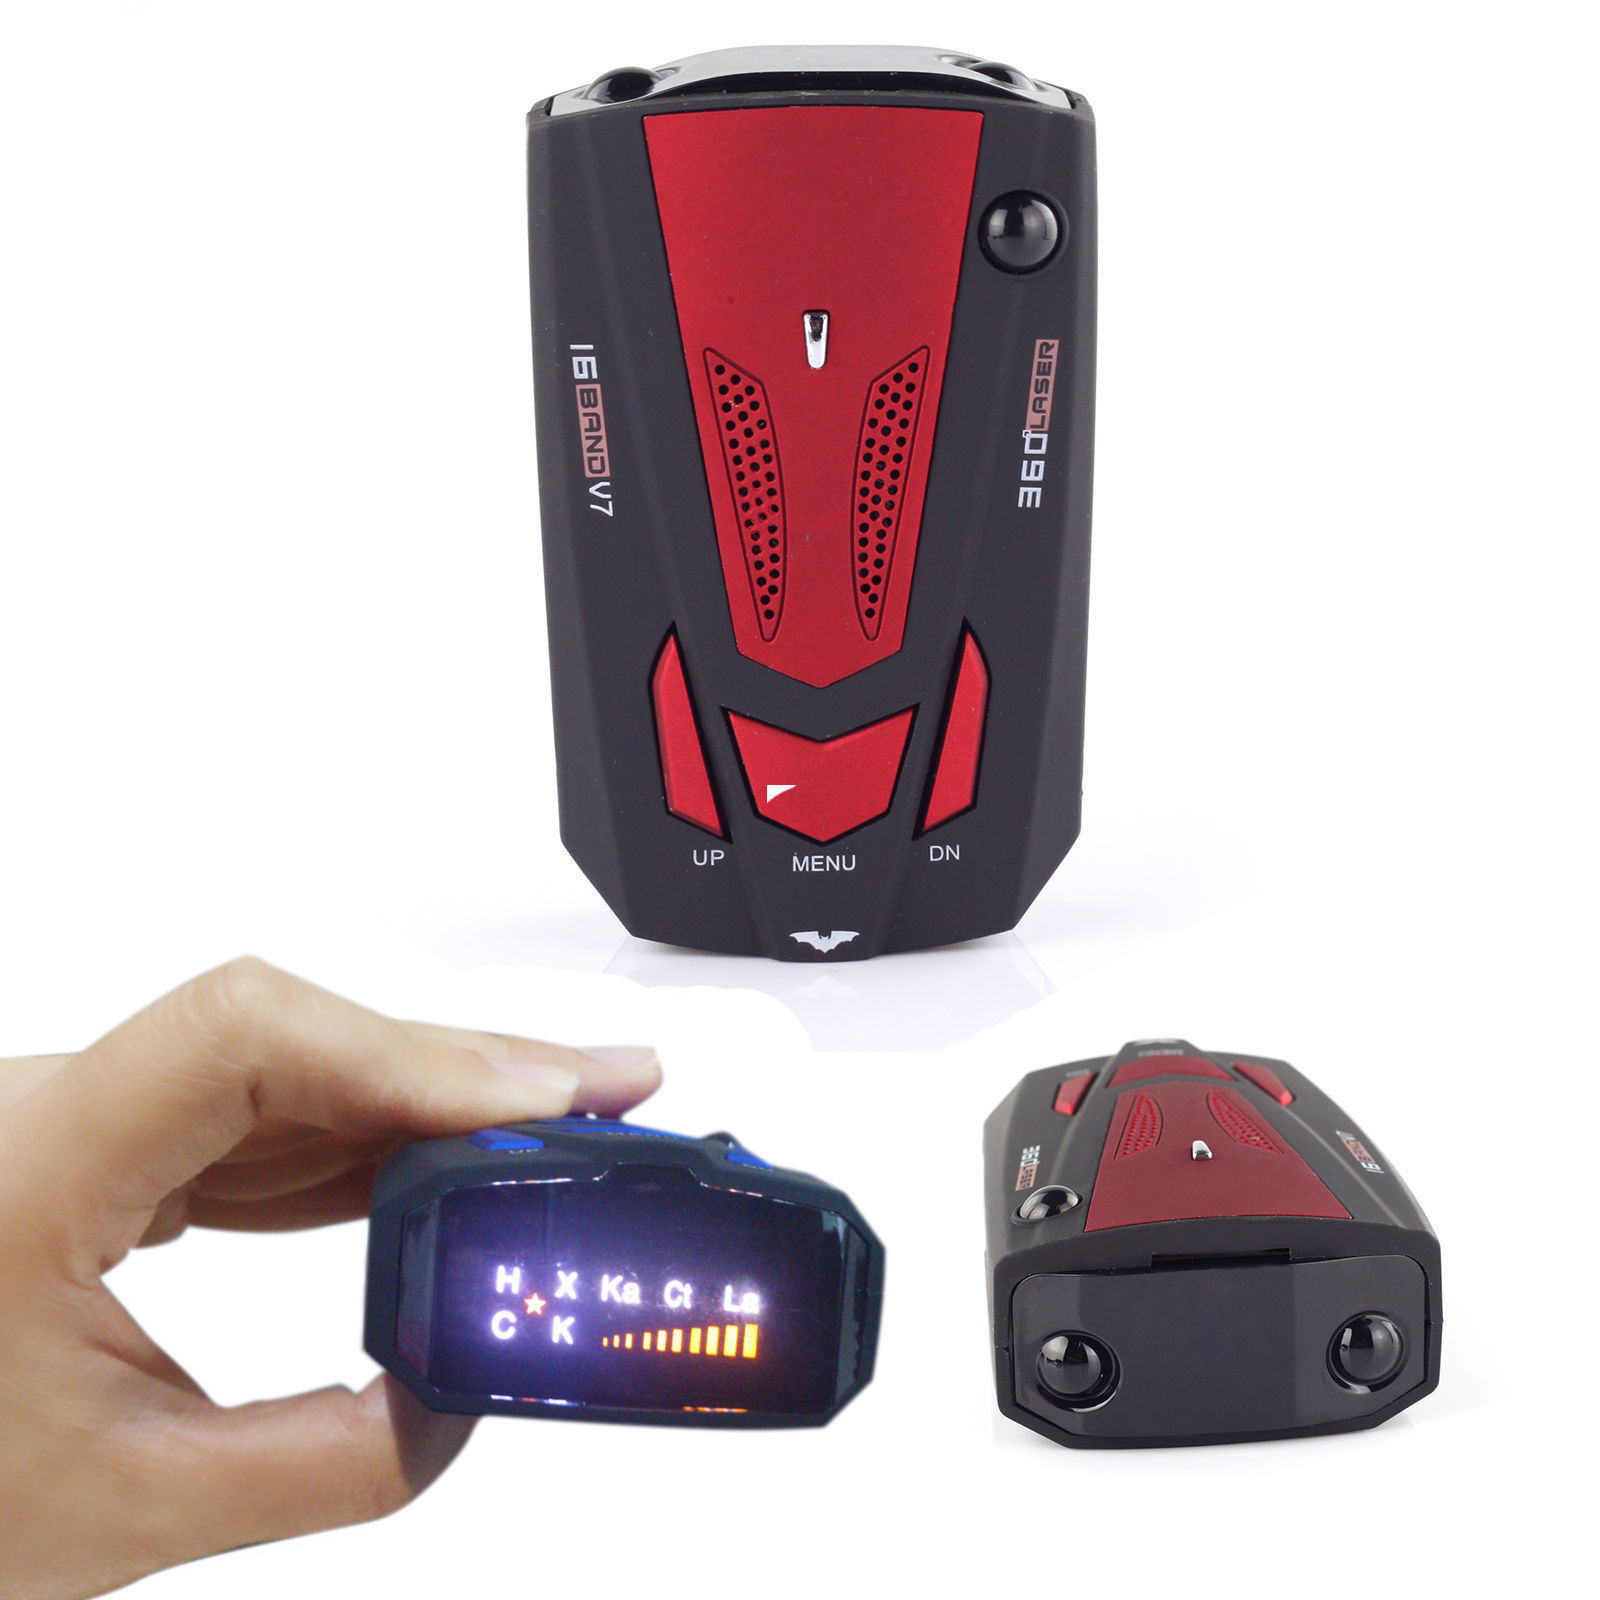 Car Radar and Laser Detector, 16 Band Laser/Radar Detector Voice Alert Car Speed Alarm System with 360 Degree Detection, City/Highway Mode, Bright LED Display